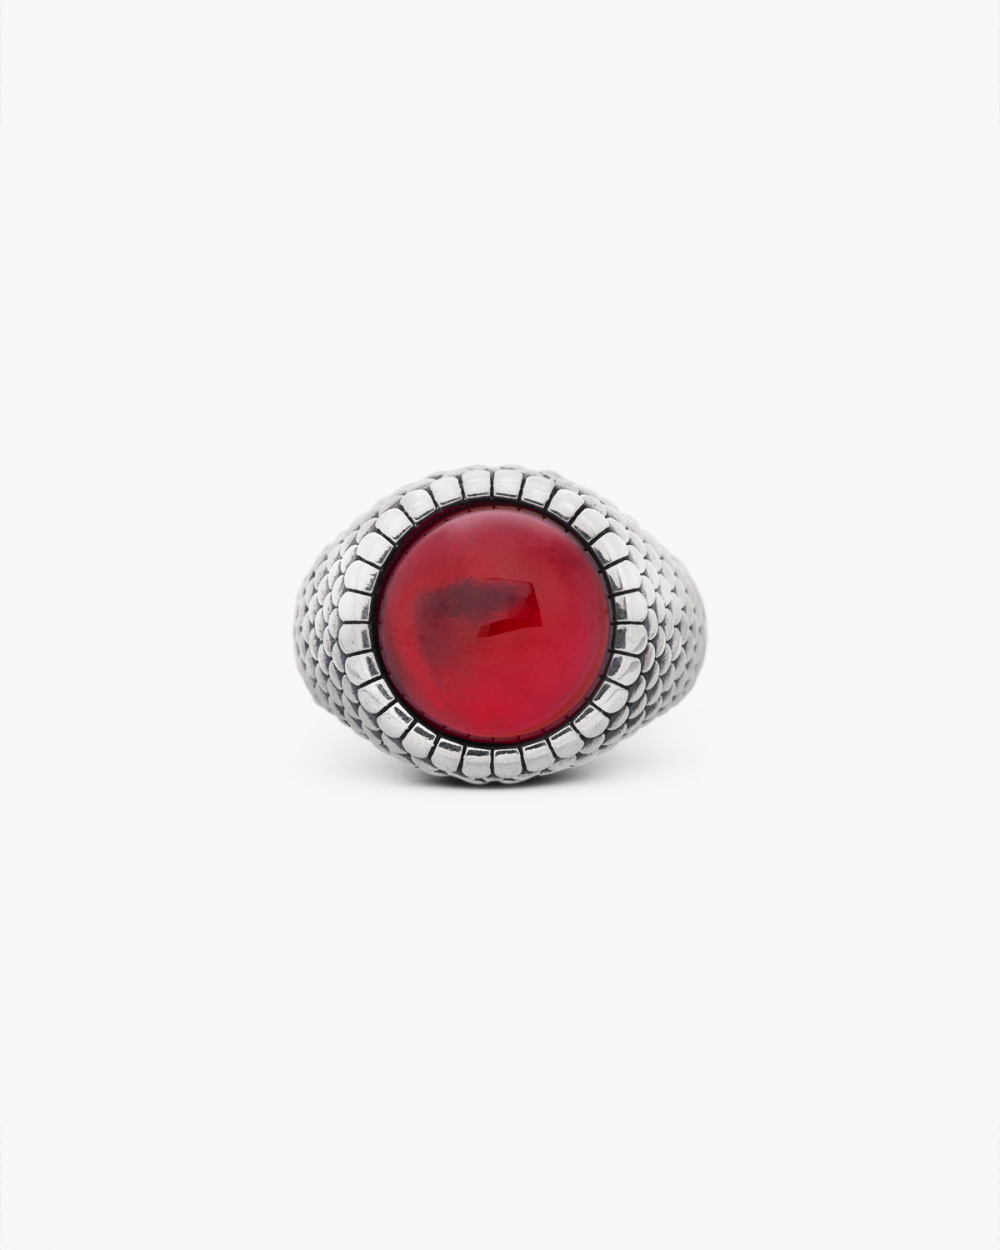 Archive Sale ARMOUR ROUND CORUNDUM SIGNET RING NOVE25